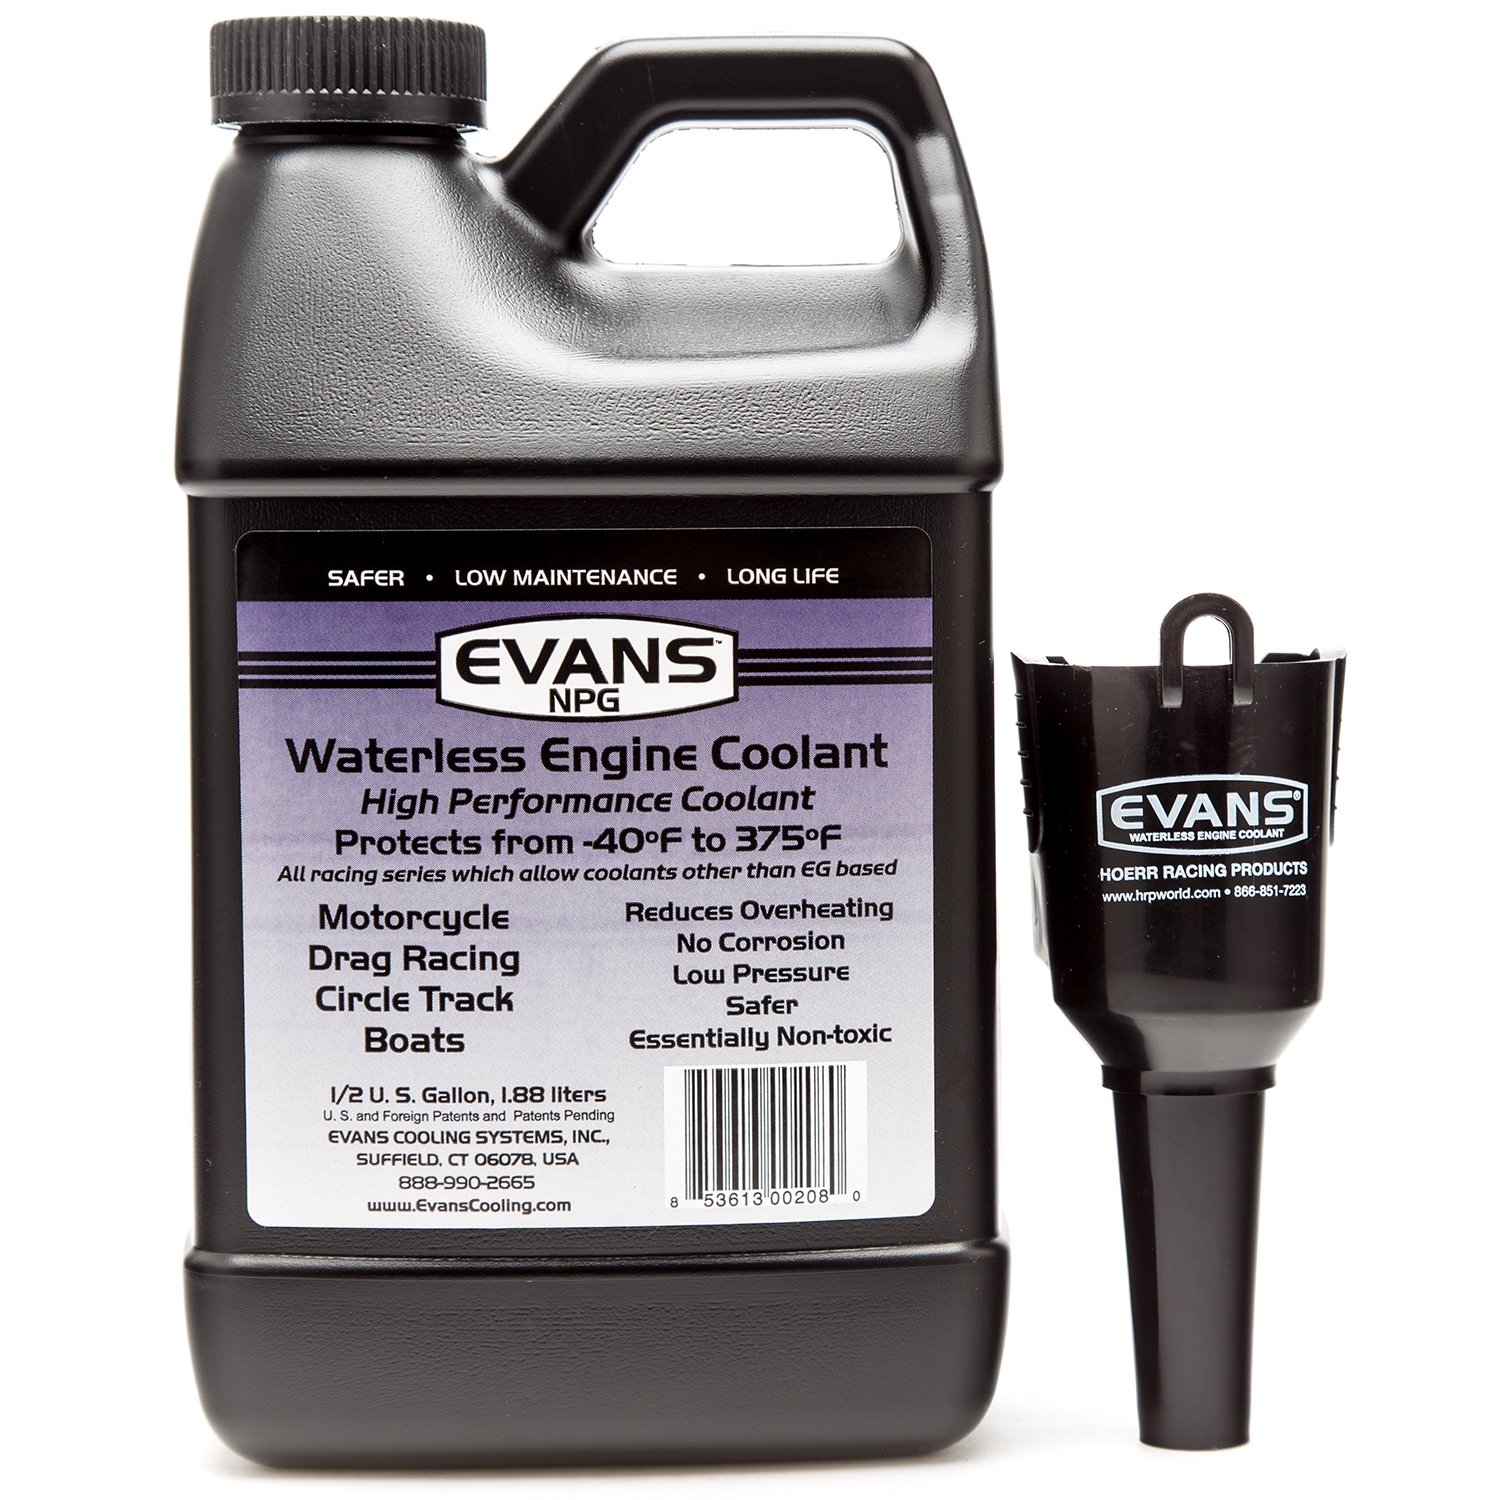 Evans EC10064 Waterless Race Track Specialty Coolant (NPG), 64 fl oz., 4 Pack With Funnel EC10064-4PK